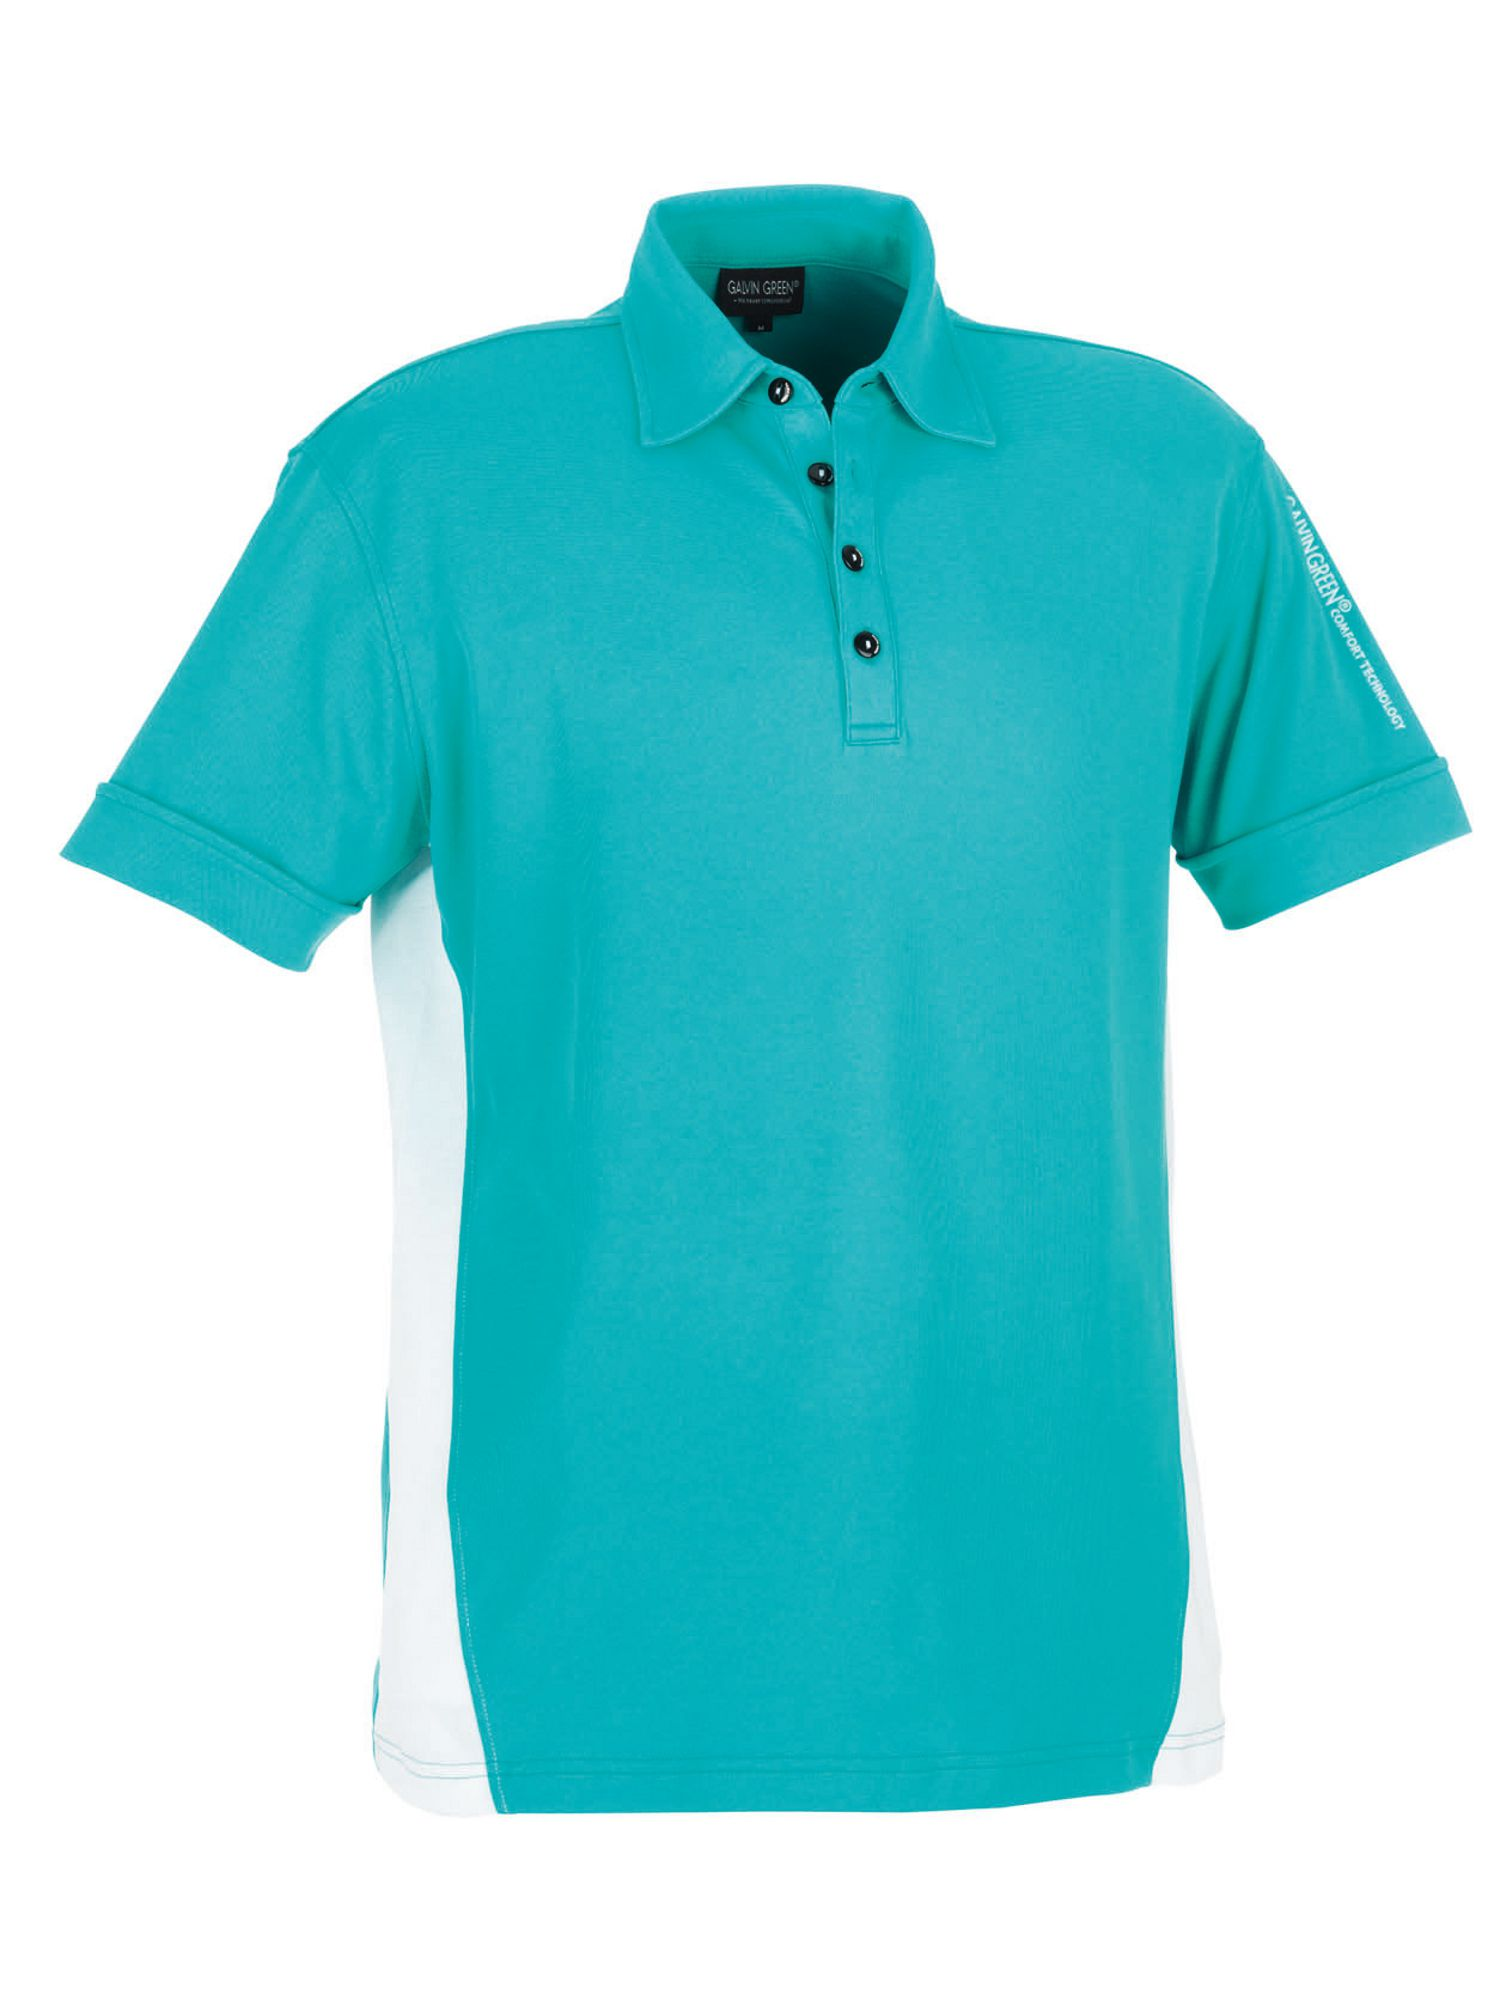 Mercer polo shirt